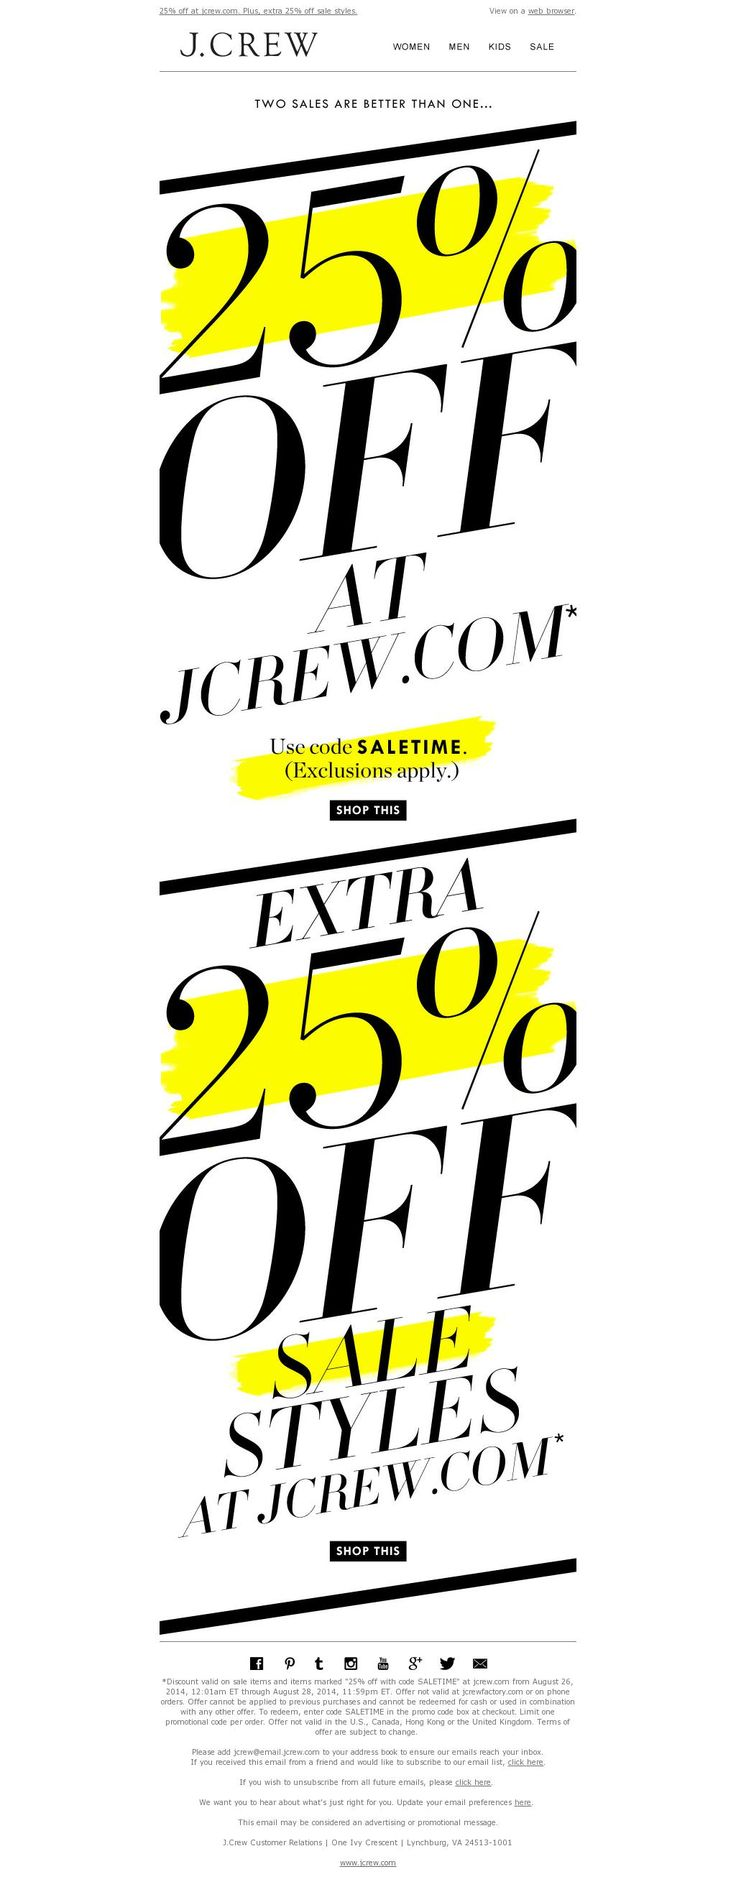 "messaging 2 promotions in one email, strategic ""highlighting"" of key information"